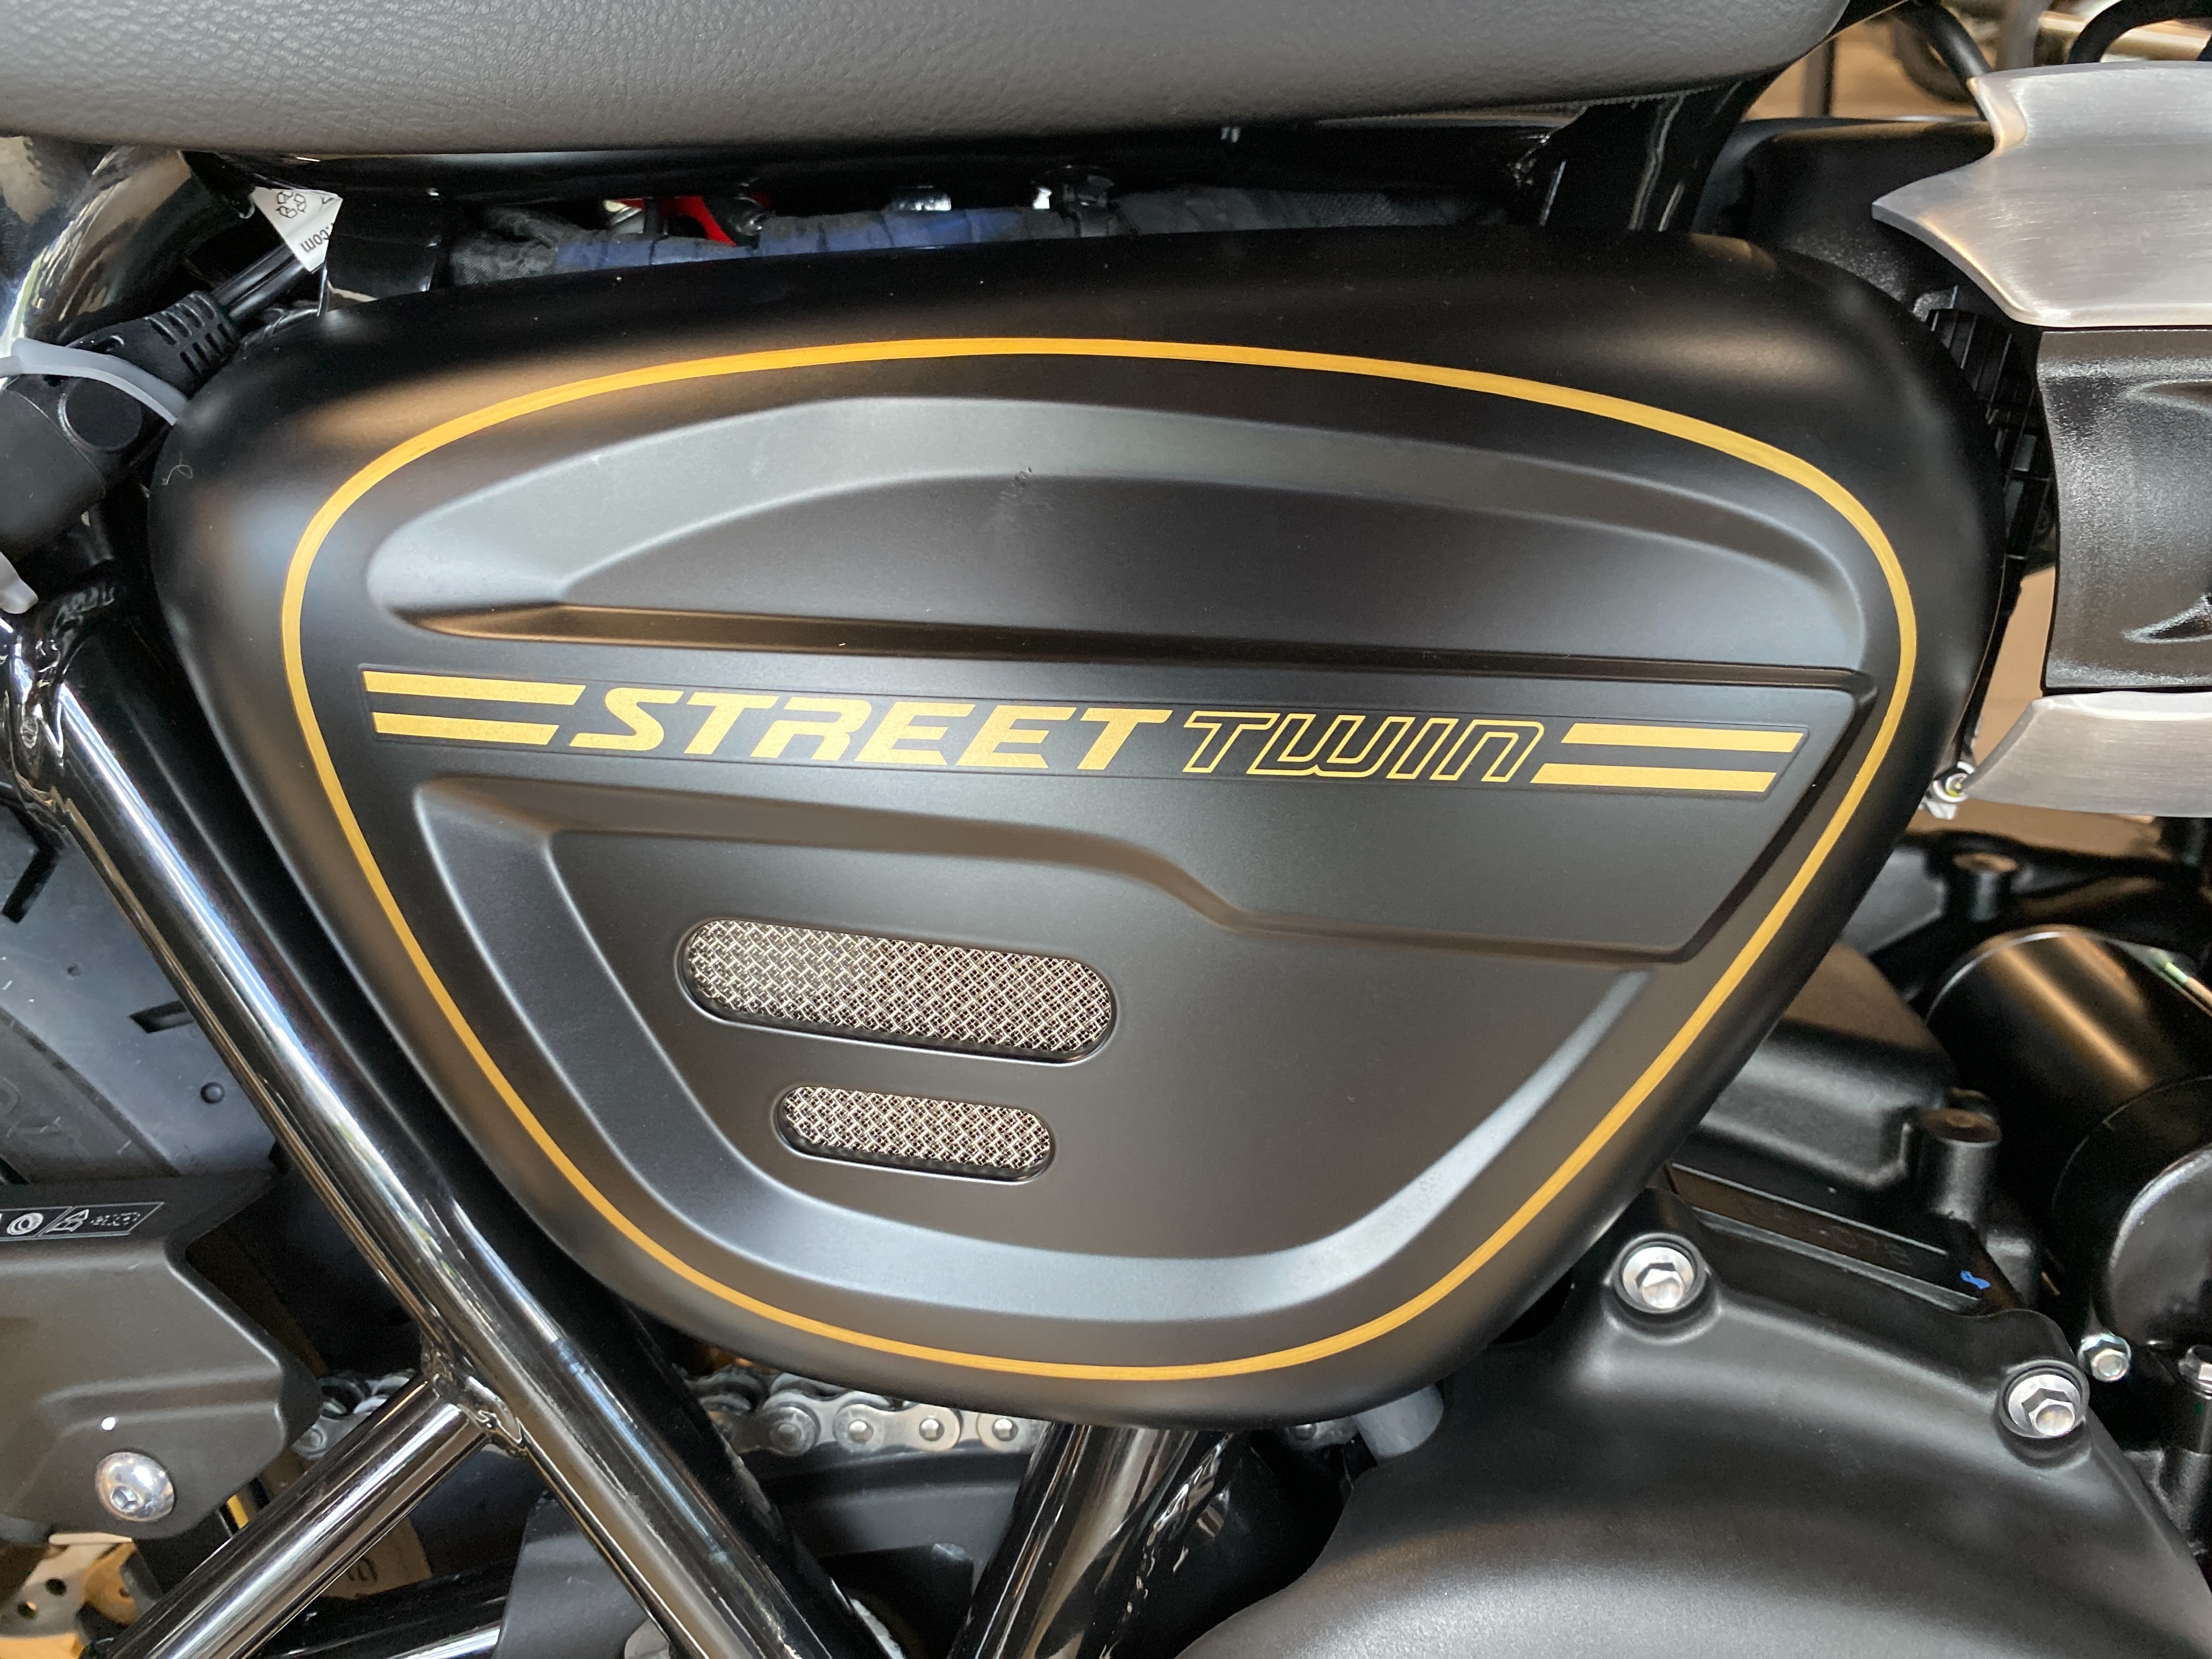 2022 Triumph Street Twin Gold Line at Frontline Eurosports